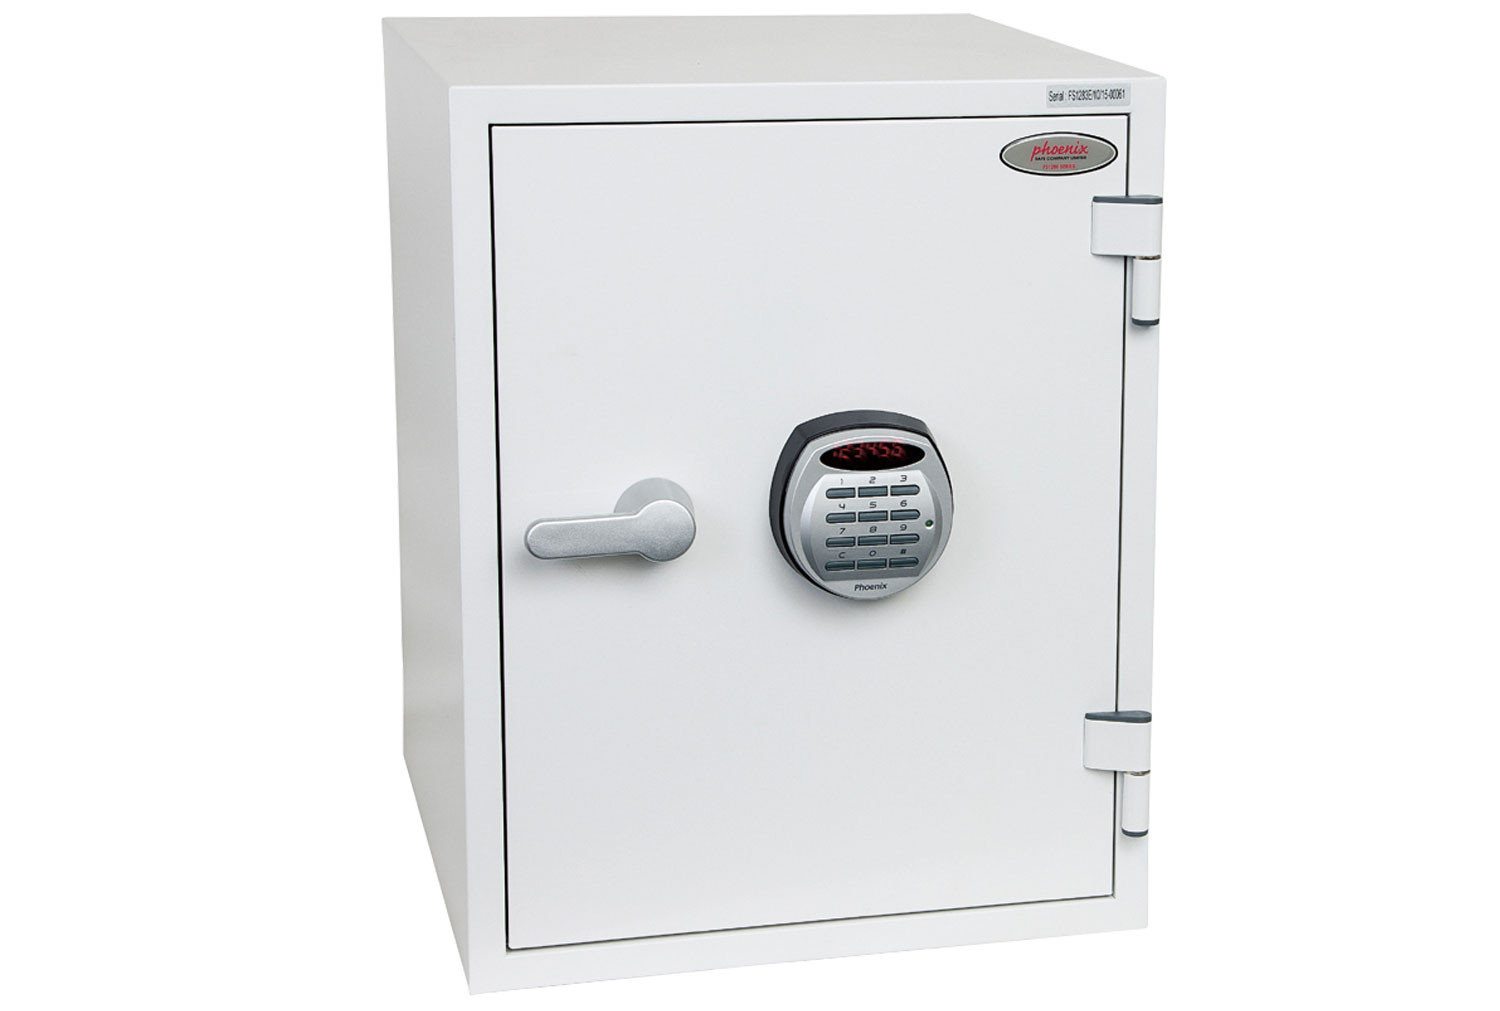 Phoenix Titan FS1283E Fire Safe With Electronic Lock (36ltrs)